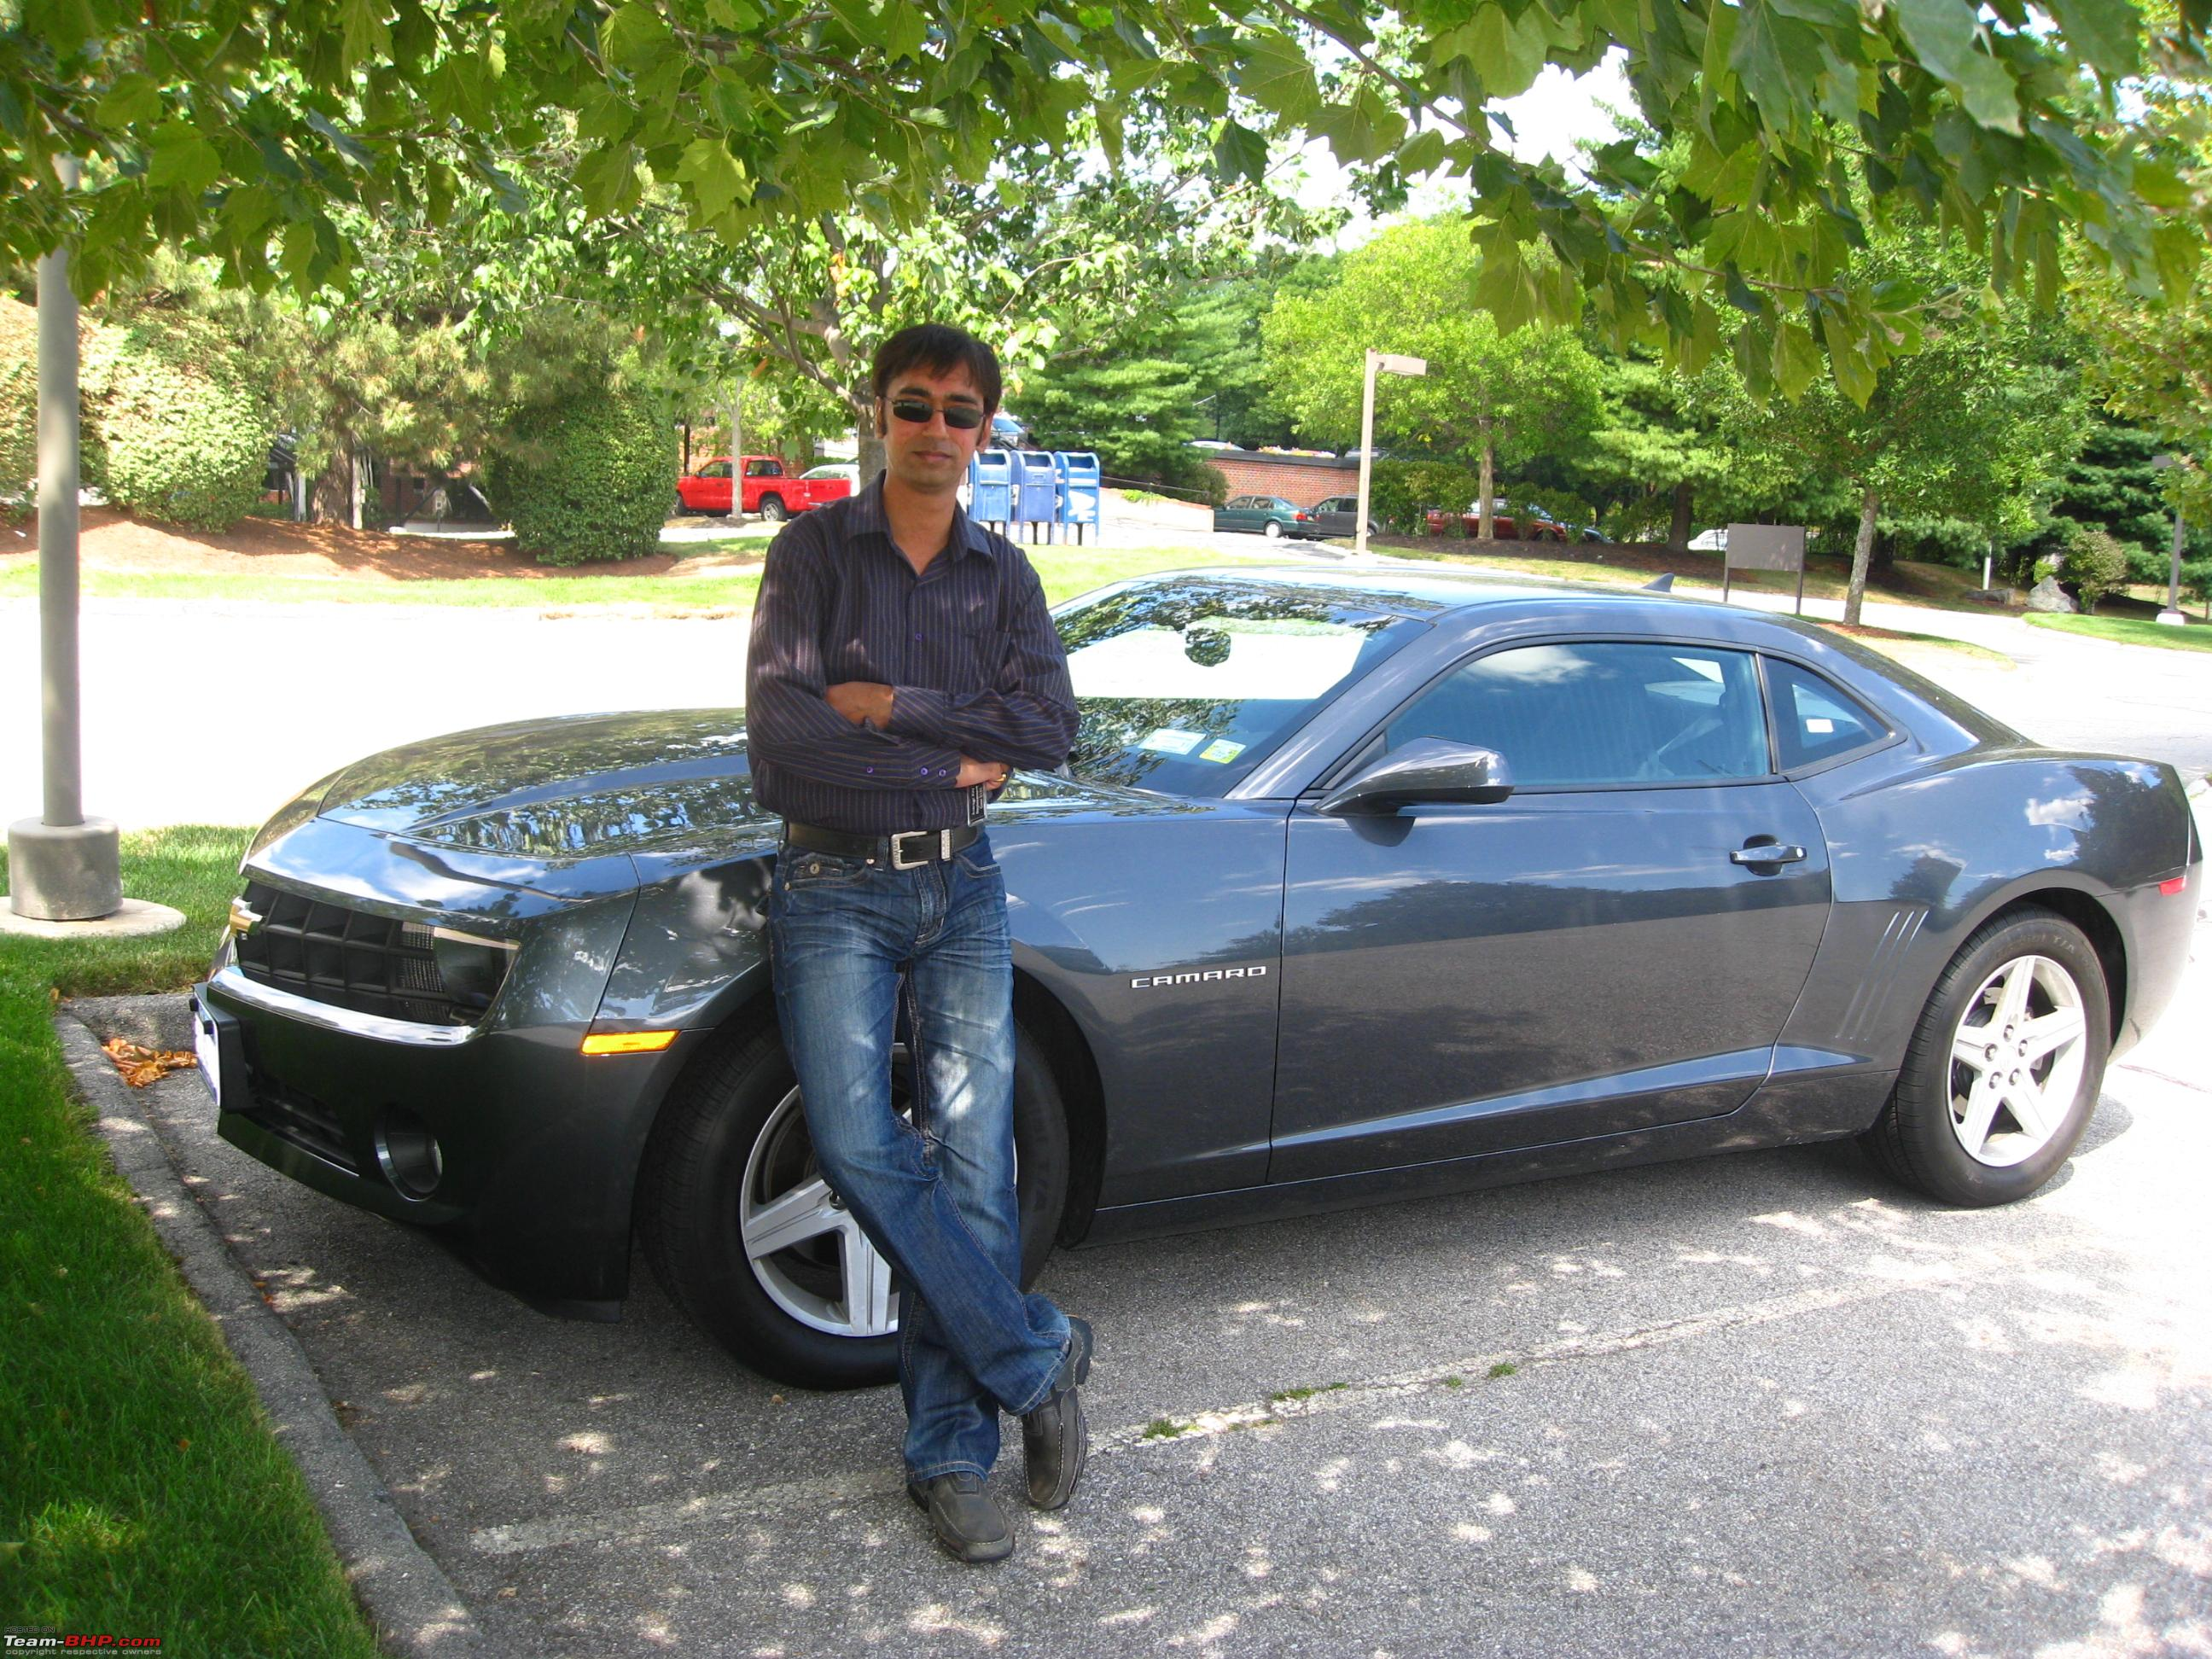 A date with the 2017 chevrolet camaro ss 6 2l 455 hp v8 img_4357